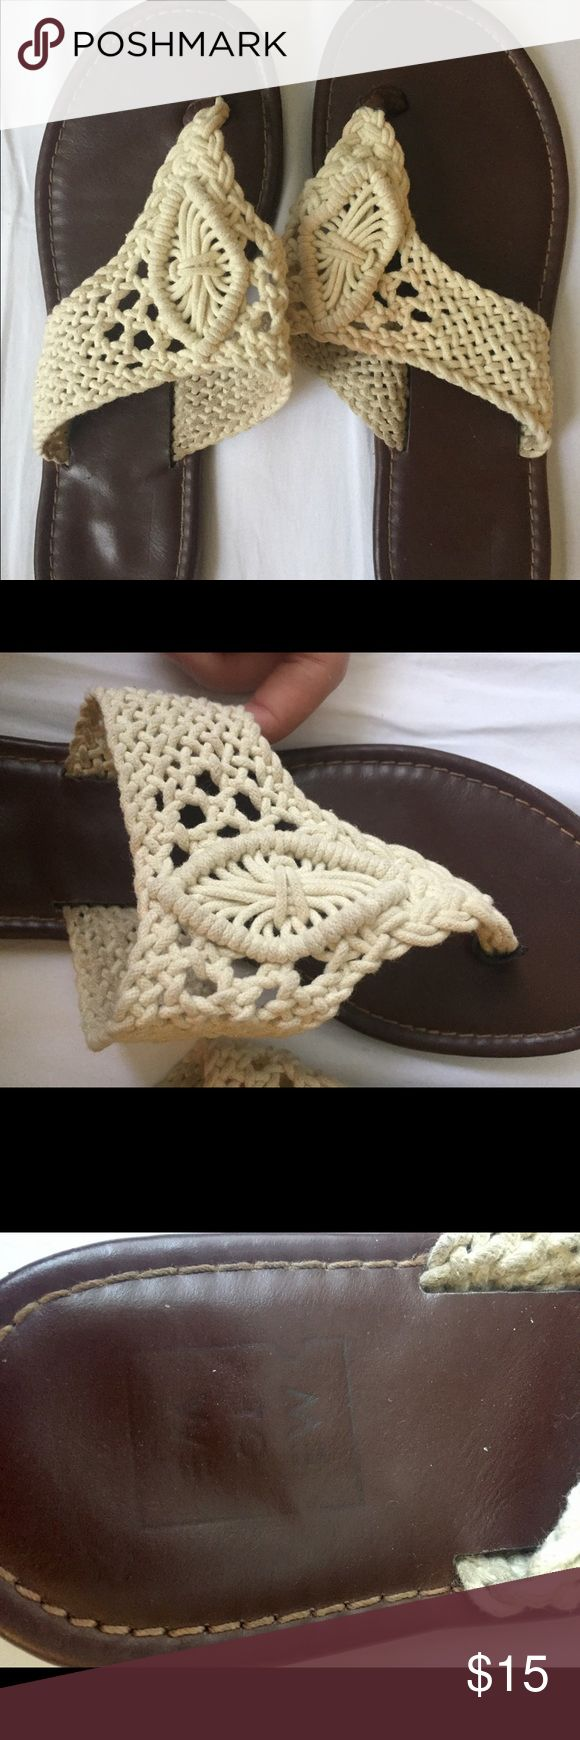 crochet sandals adorable sandals to wear anywhere! cute crochet design, from me to we at PACSUN PacSun Shoes Sandals